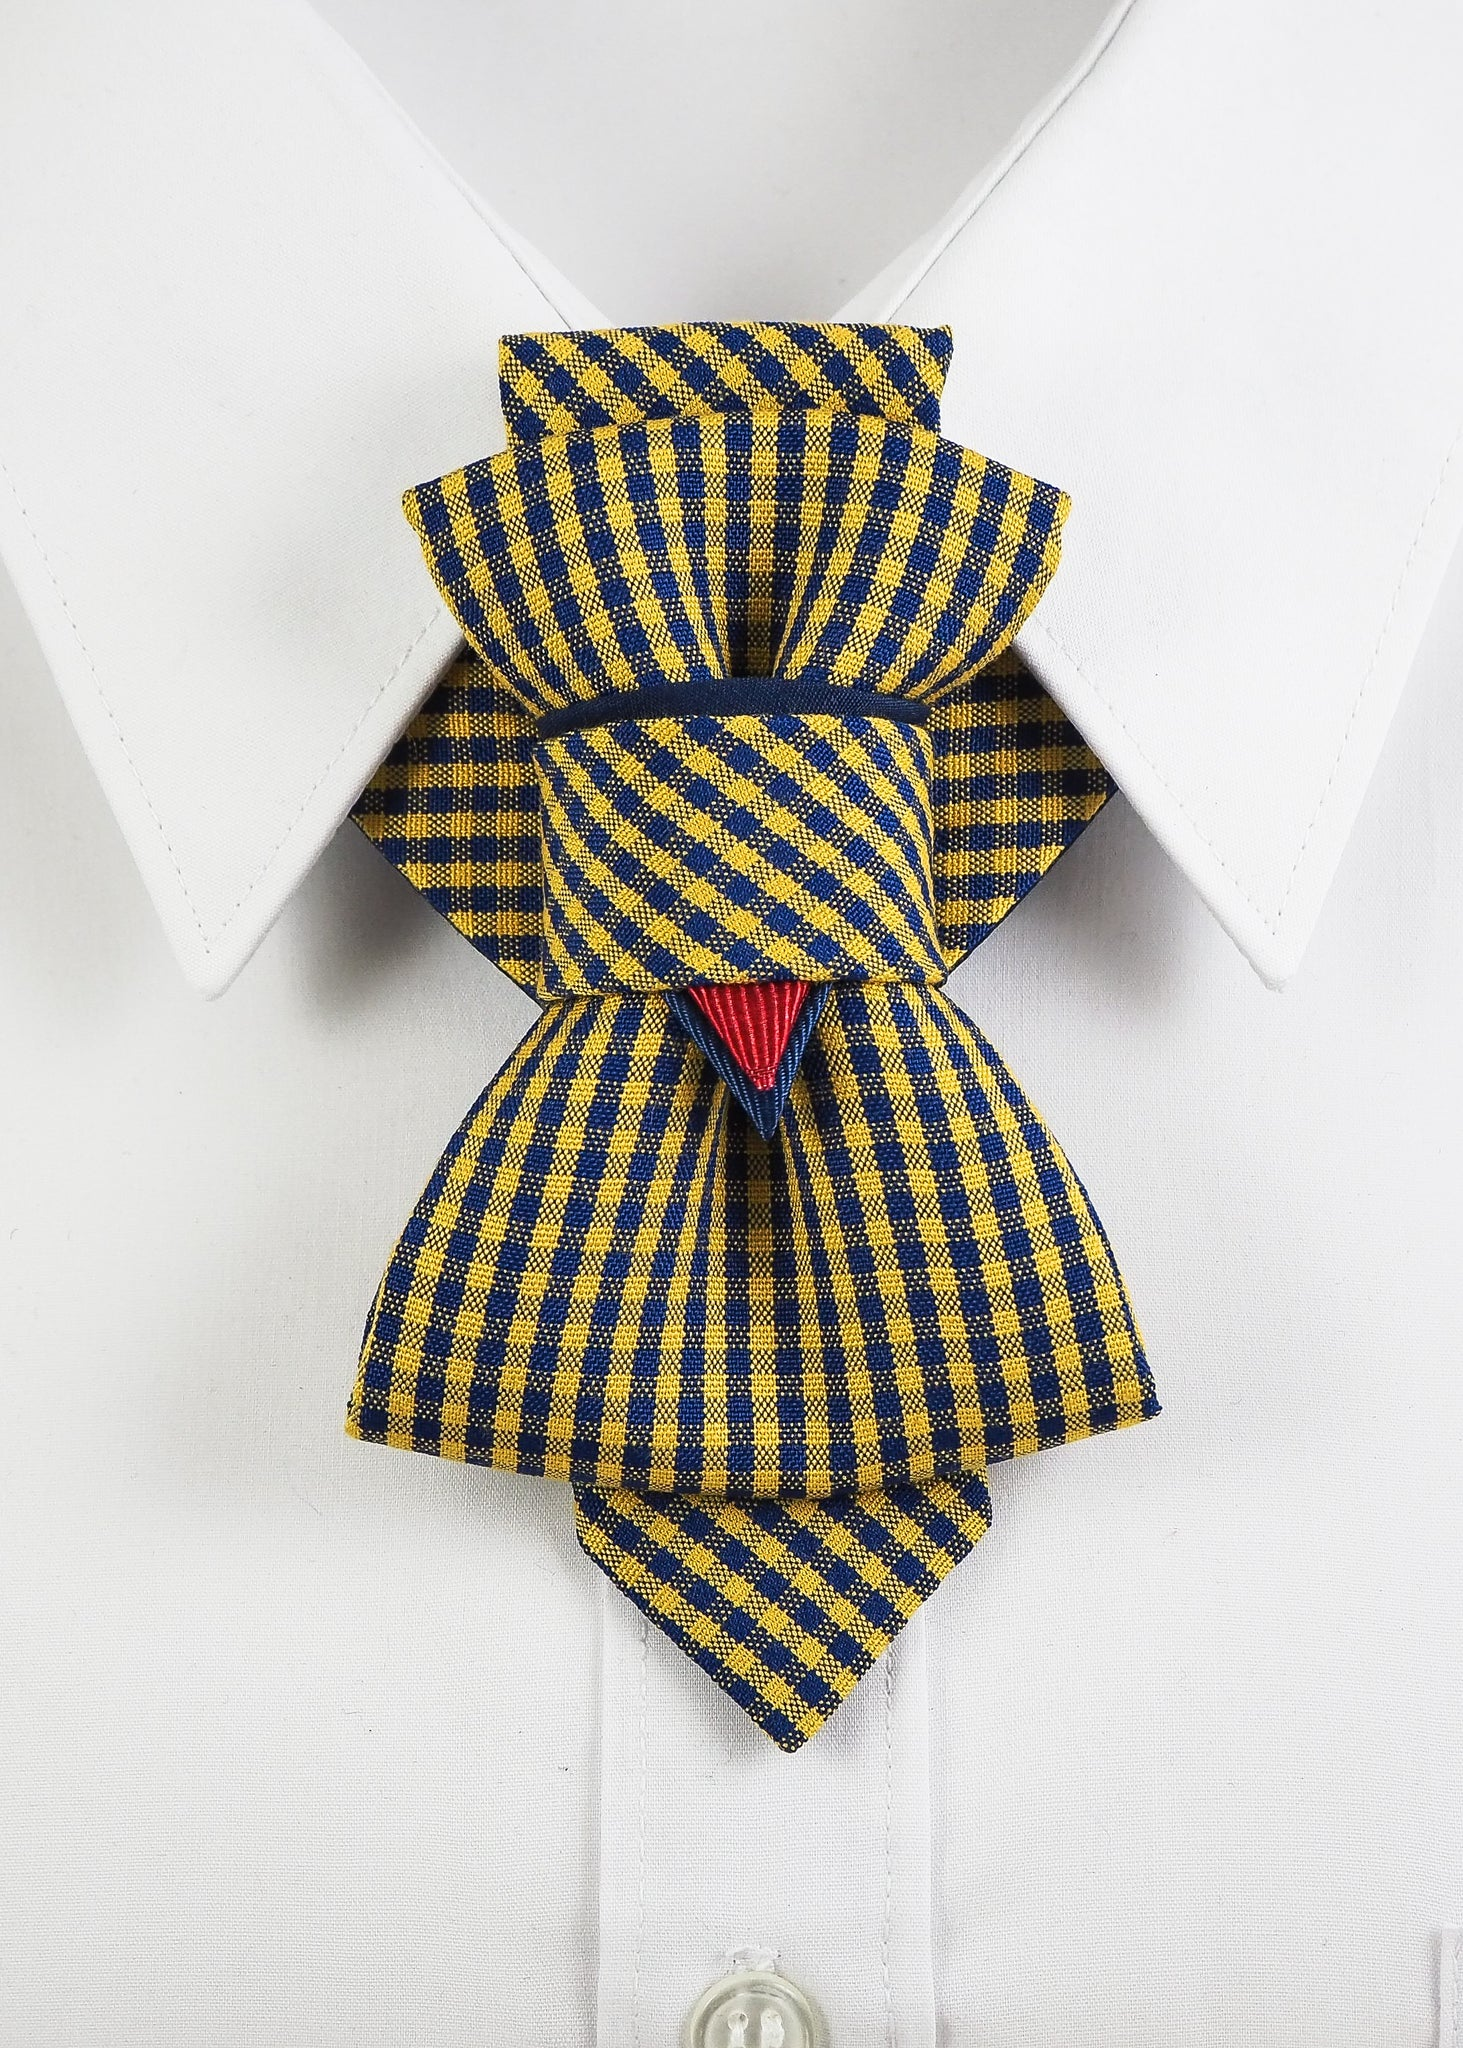 Bow Tie, Tie for wedding suite PICNIC hopper tie Bow tie